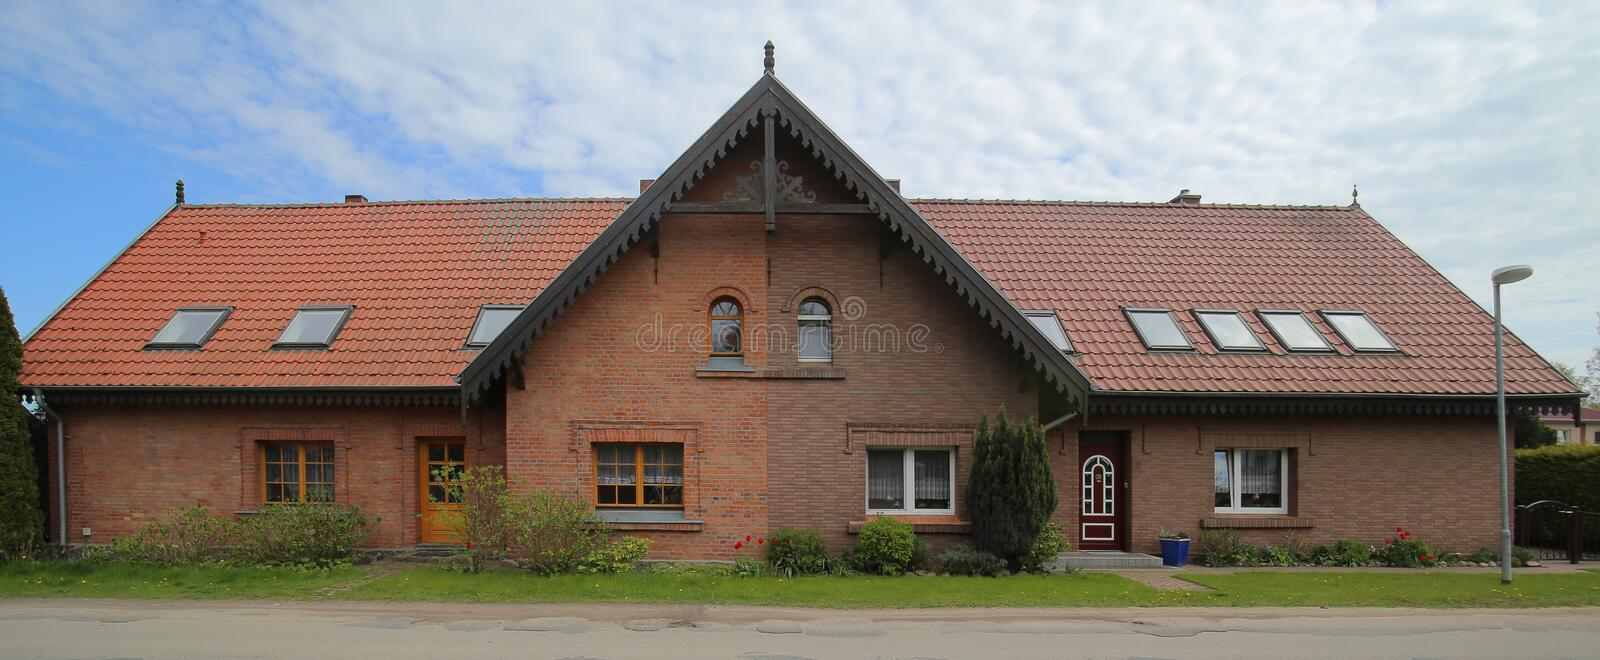 Download Semi Detached House Listed As Monument In Germany Stock Photo - Image of germany, vorpommern: 93333044